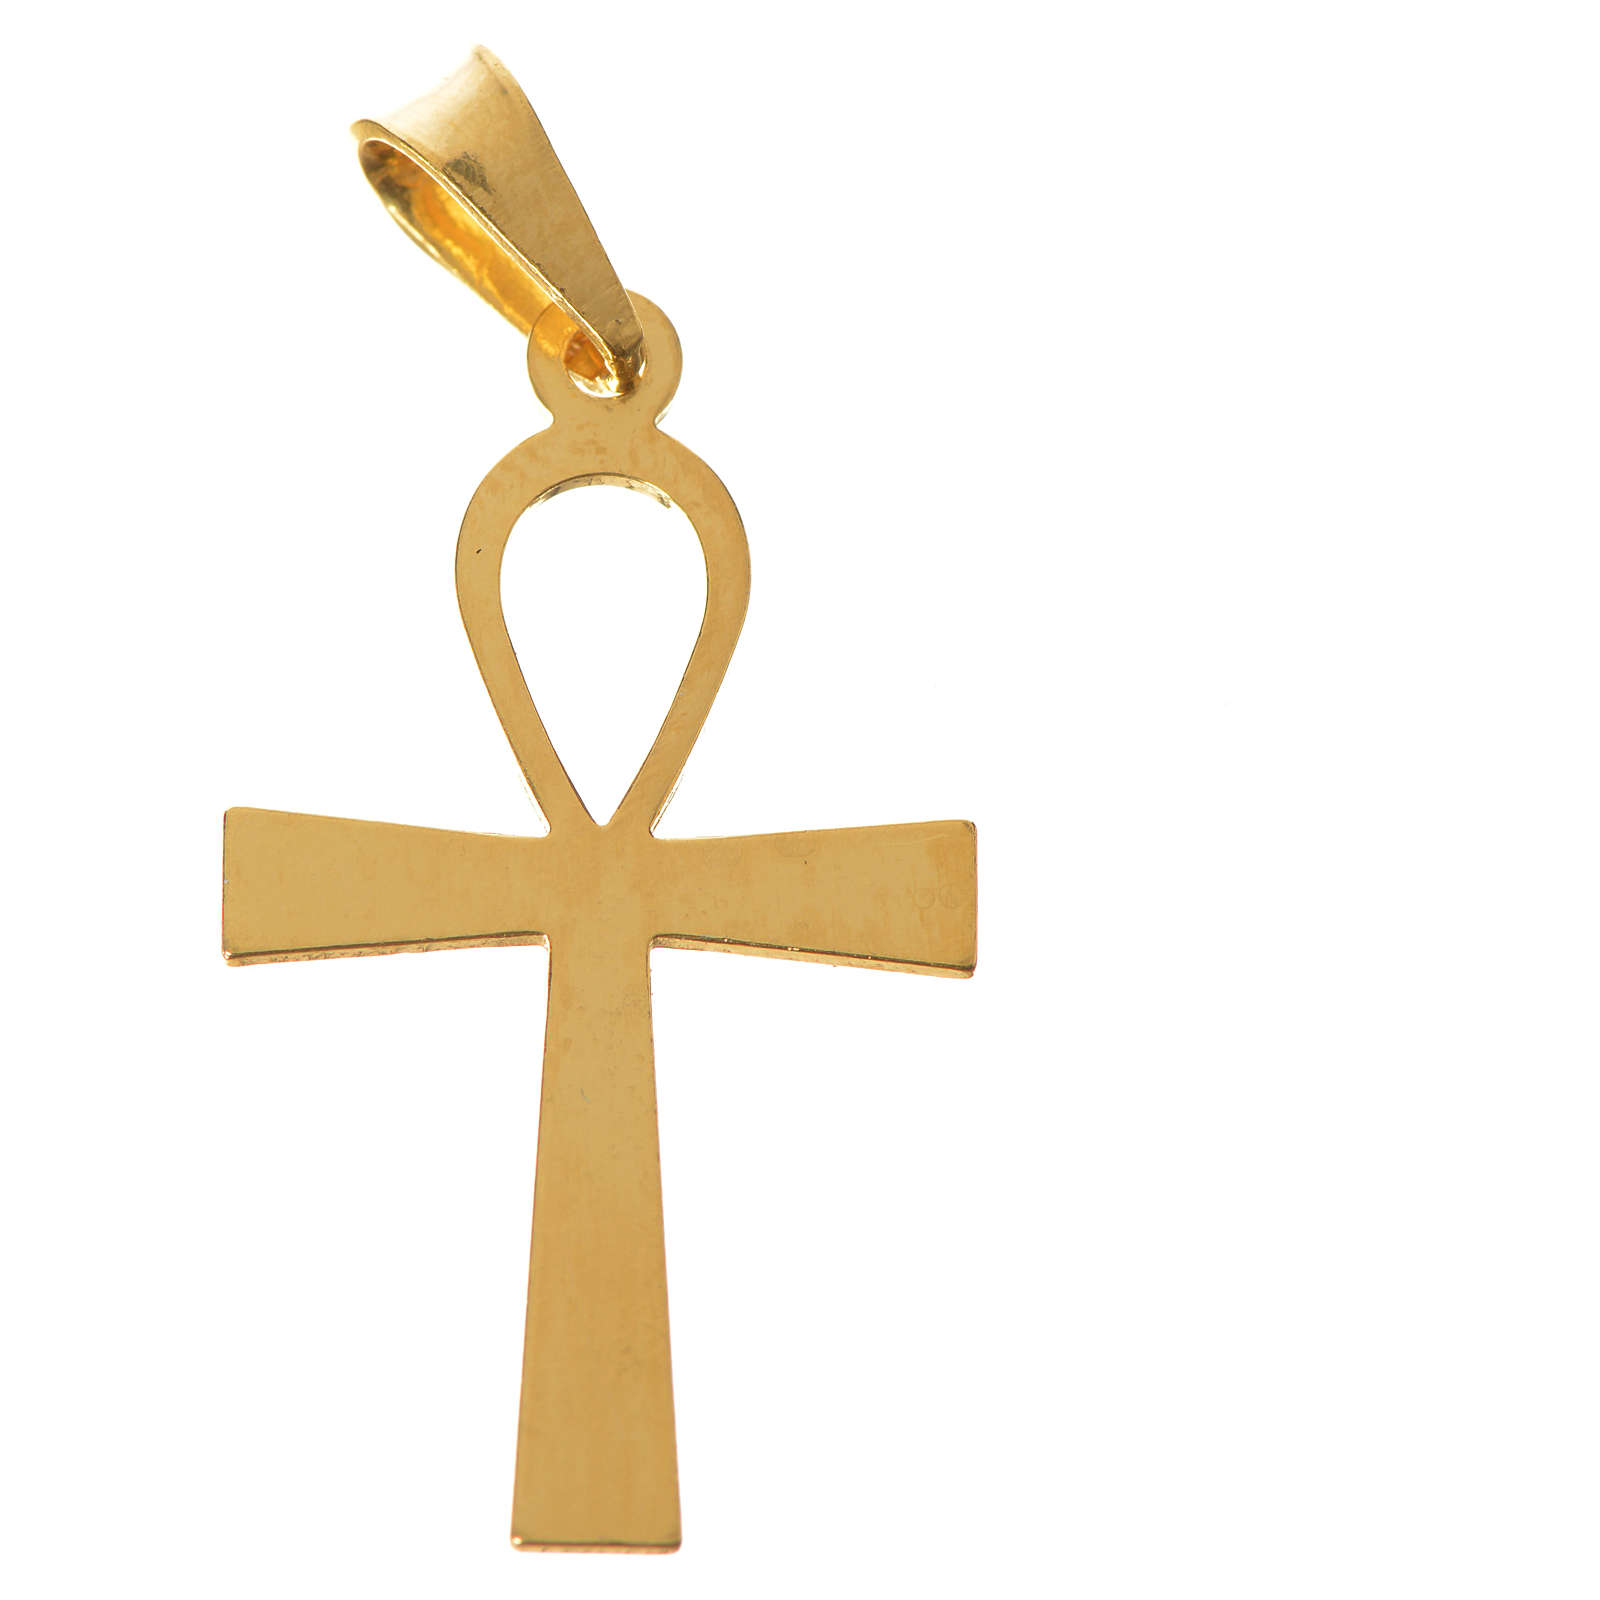 Pendant Key of life in gold-plated silver 4